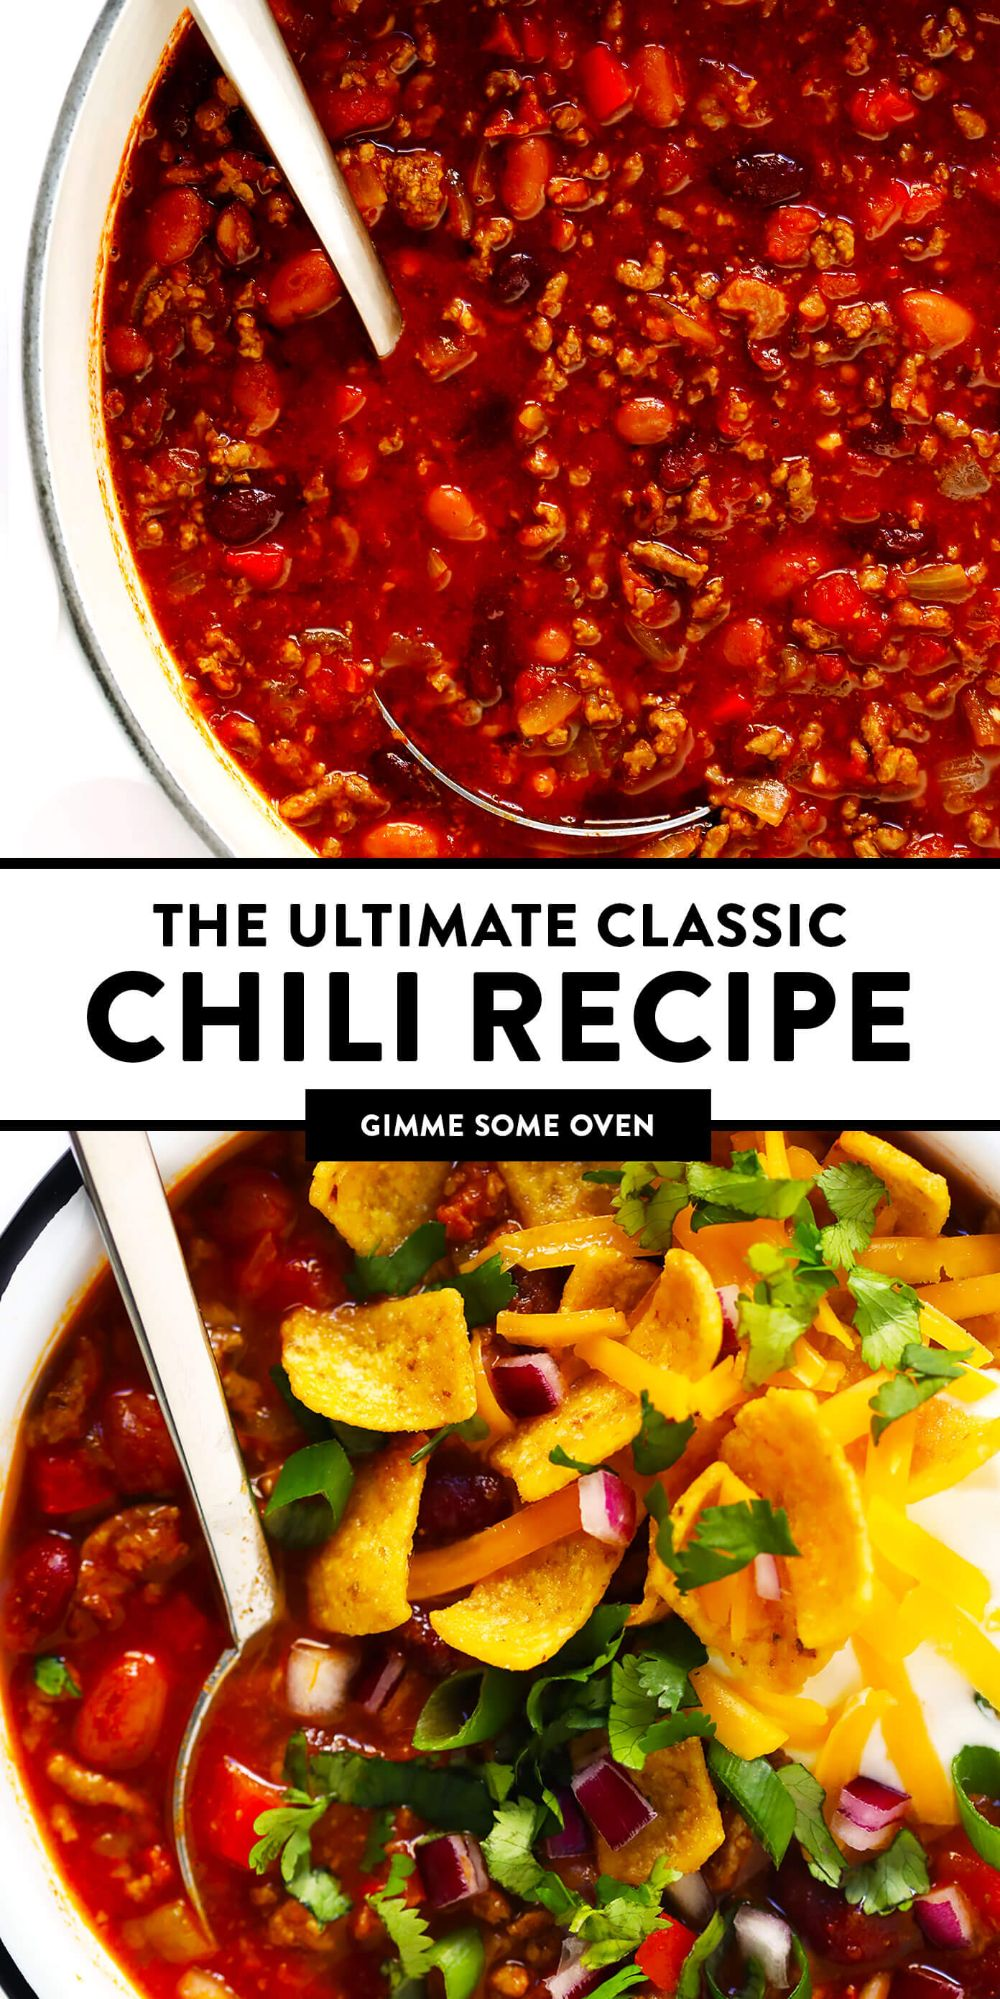 The BEST chili recipe -- made with beef, beans, veggies and the most deliciously seasoned tomato soup broth. Easy to make on the stovetop or in the Instant Pot (pressure cooker) or Crockpot (slow cooker), and always a crowd fave!! | gimmesomeoven.com #chili #soup #stew #dinner #football #mealprep #freezermeal #beef #glutenfree